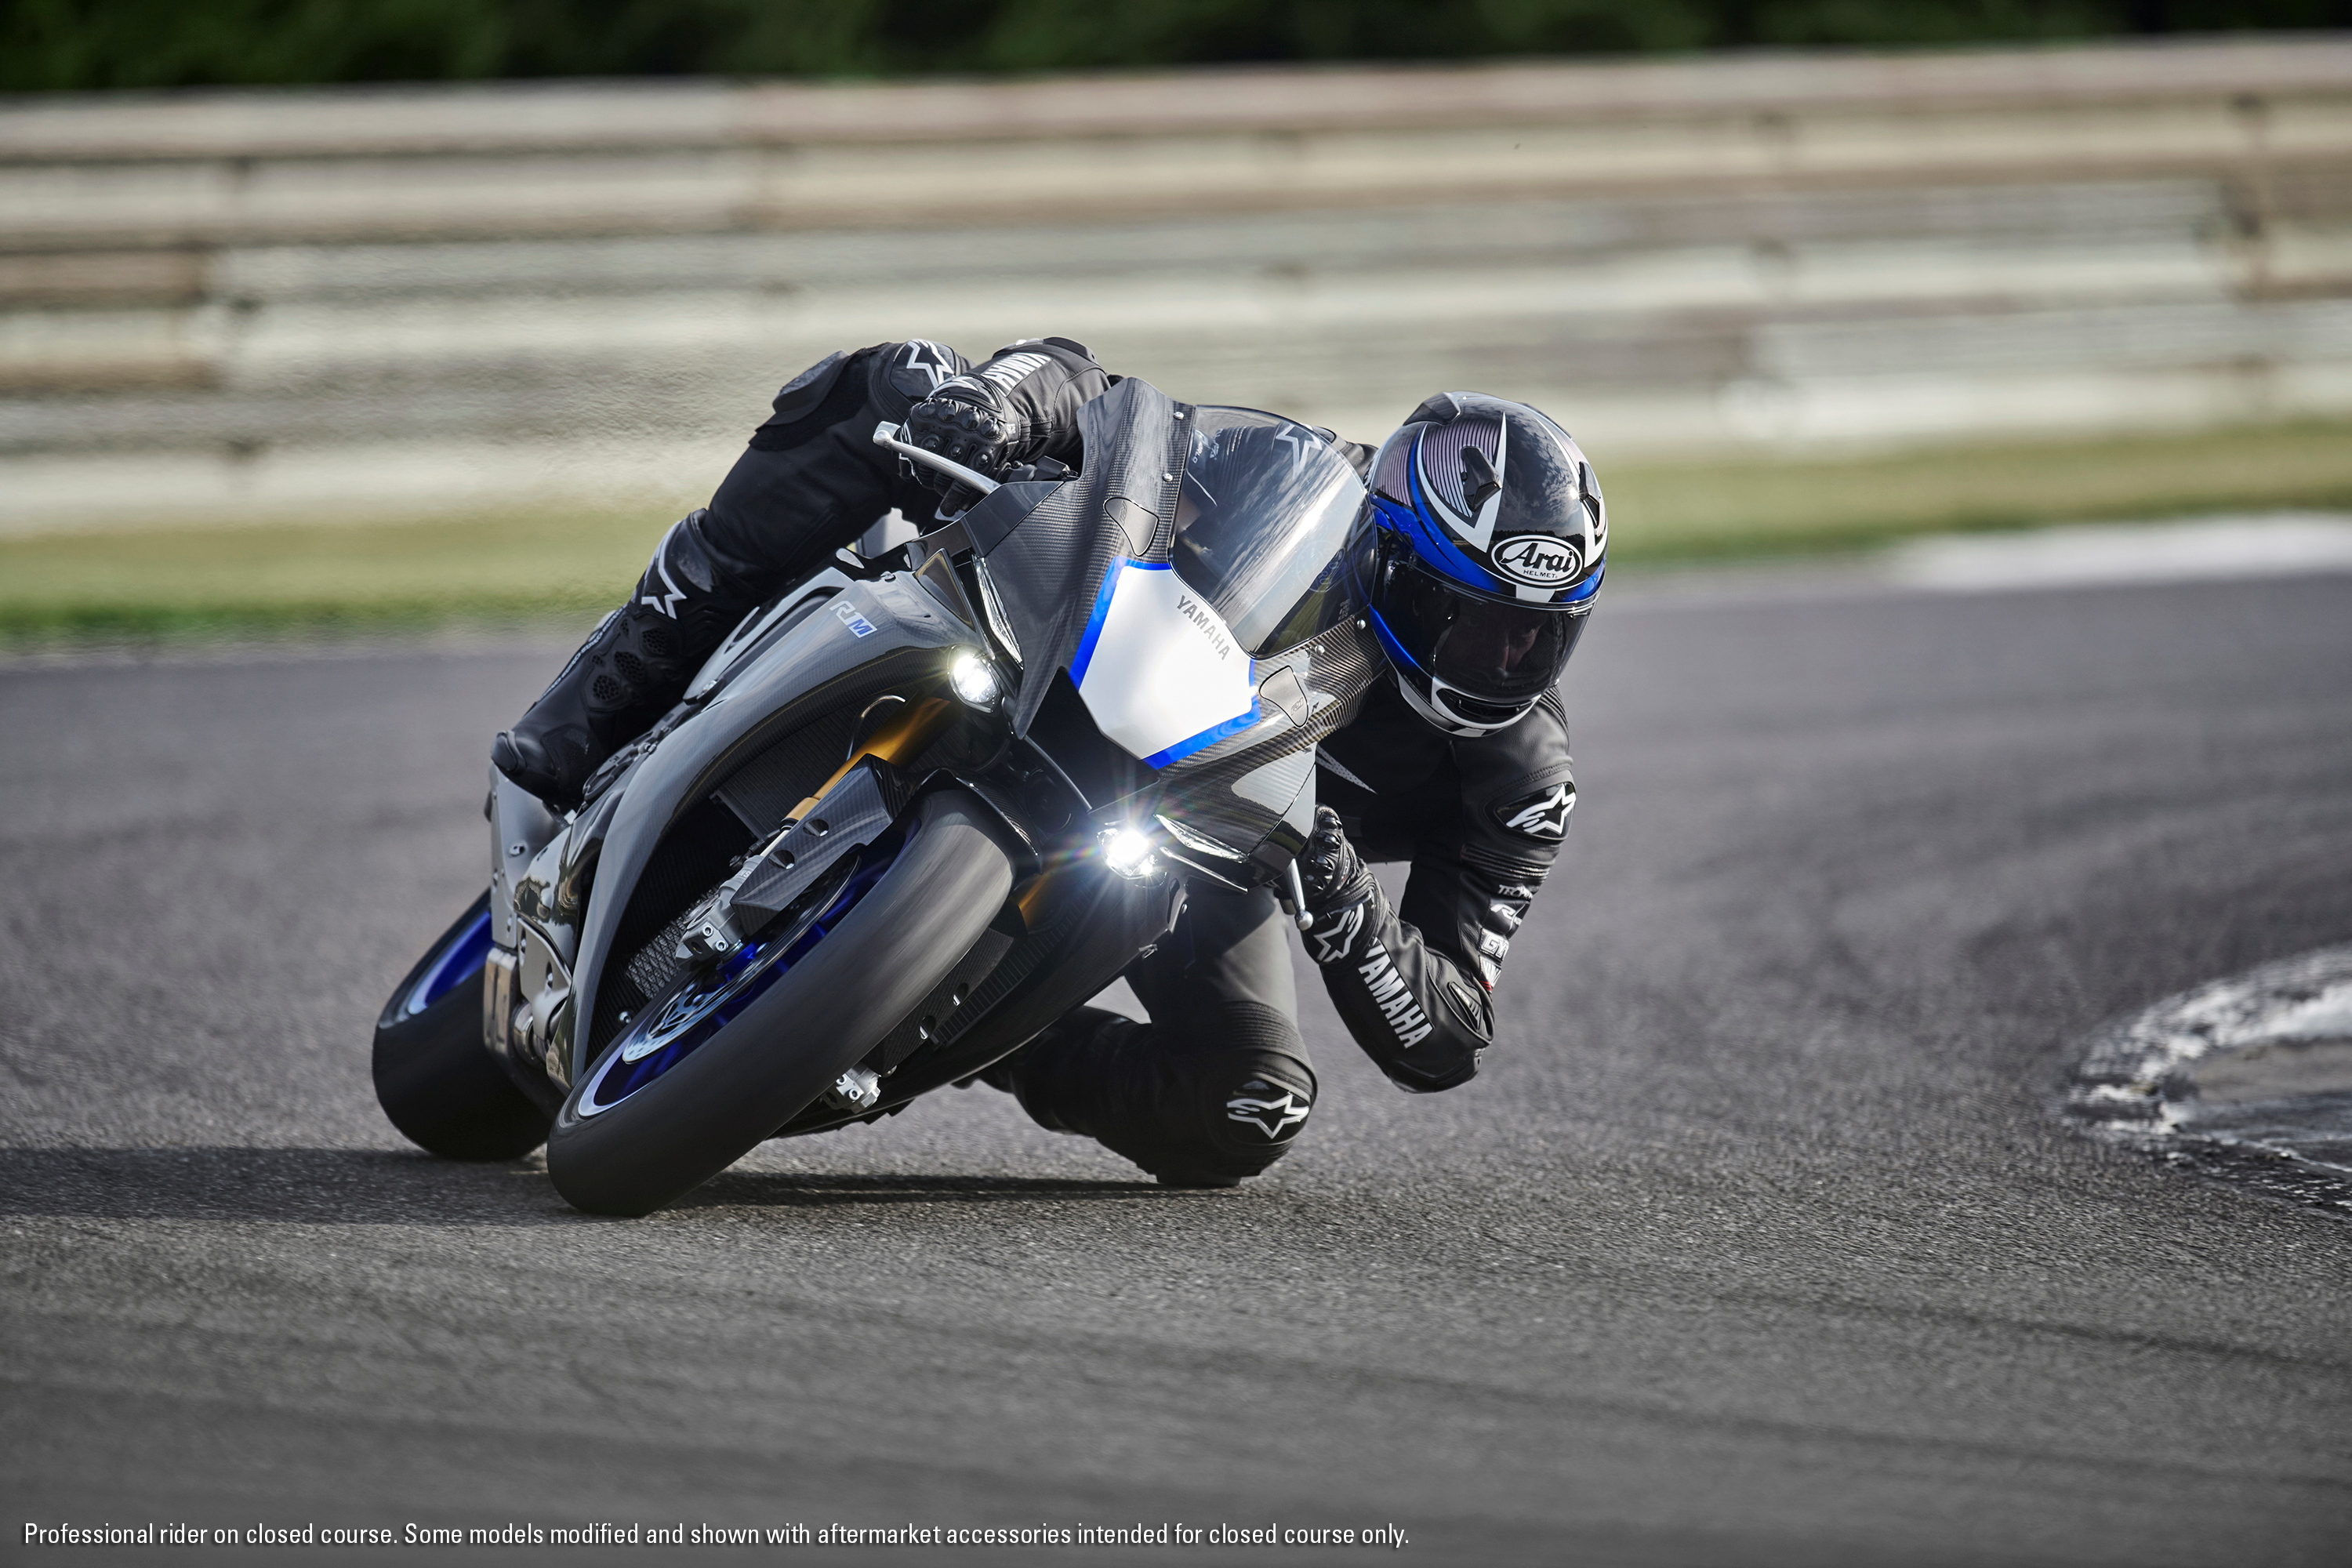 2020 Yamaha Yzf R1 R1m Pictures Photos Wallpapers Top